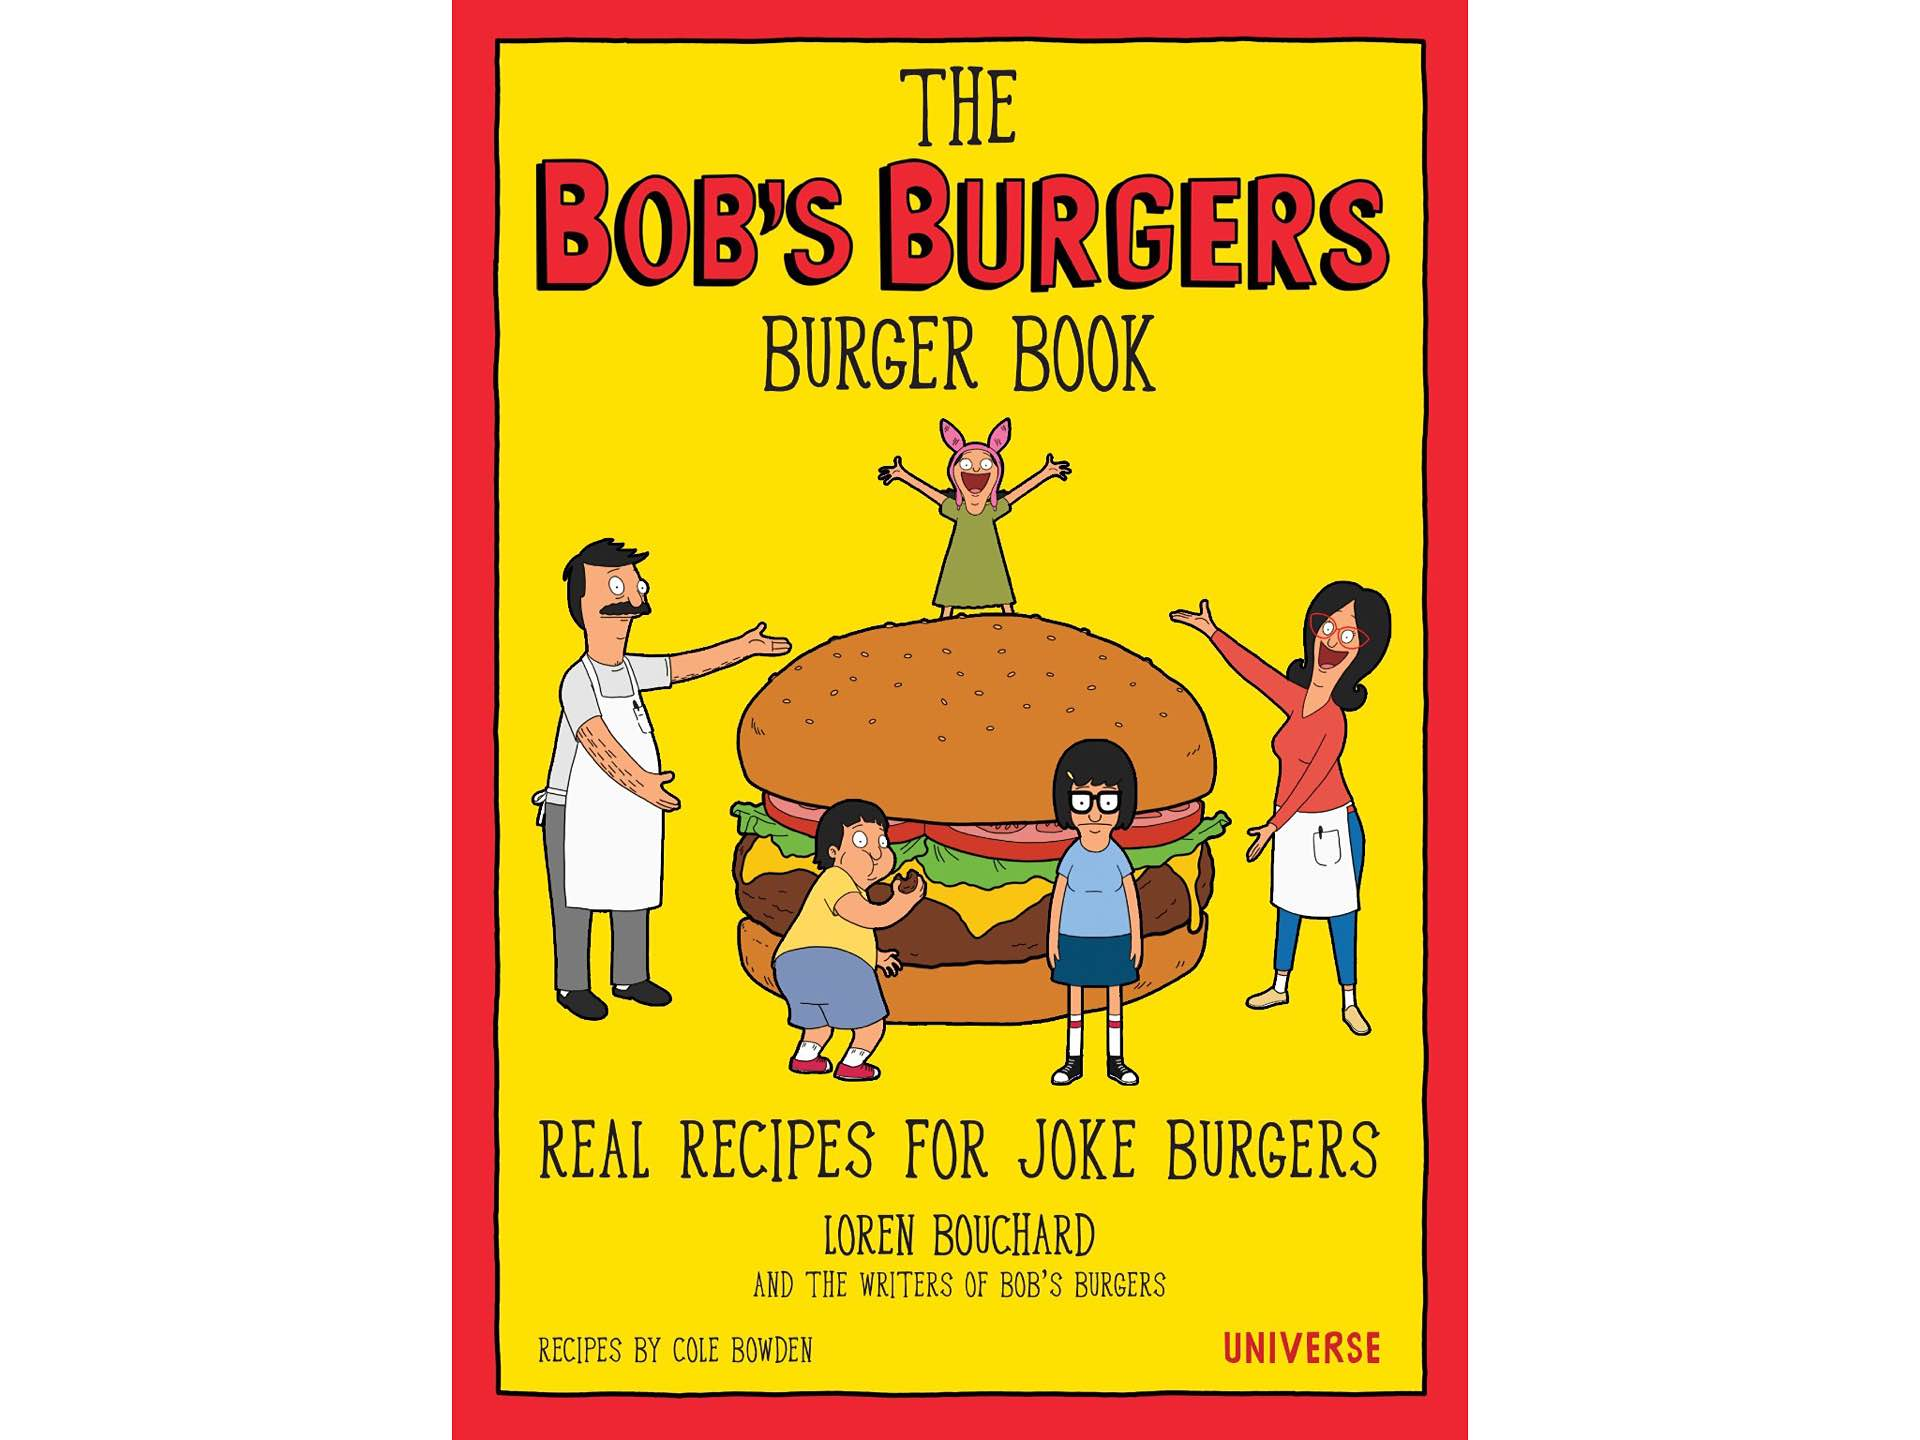 The Bob's Burgers Burger Book: Real Recipes for Joke Burgers by Loren Bouchard.